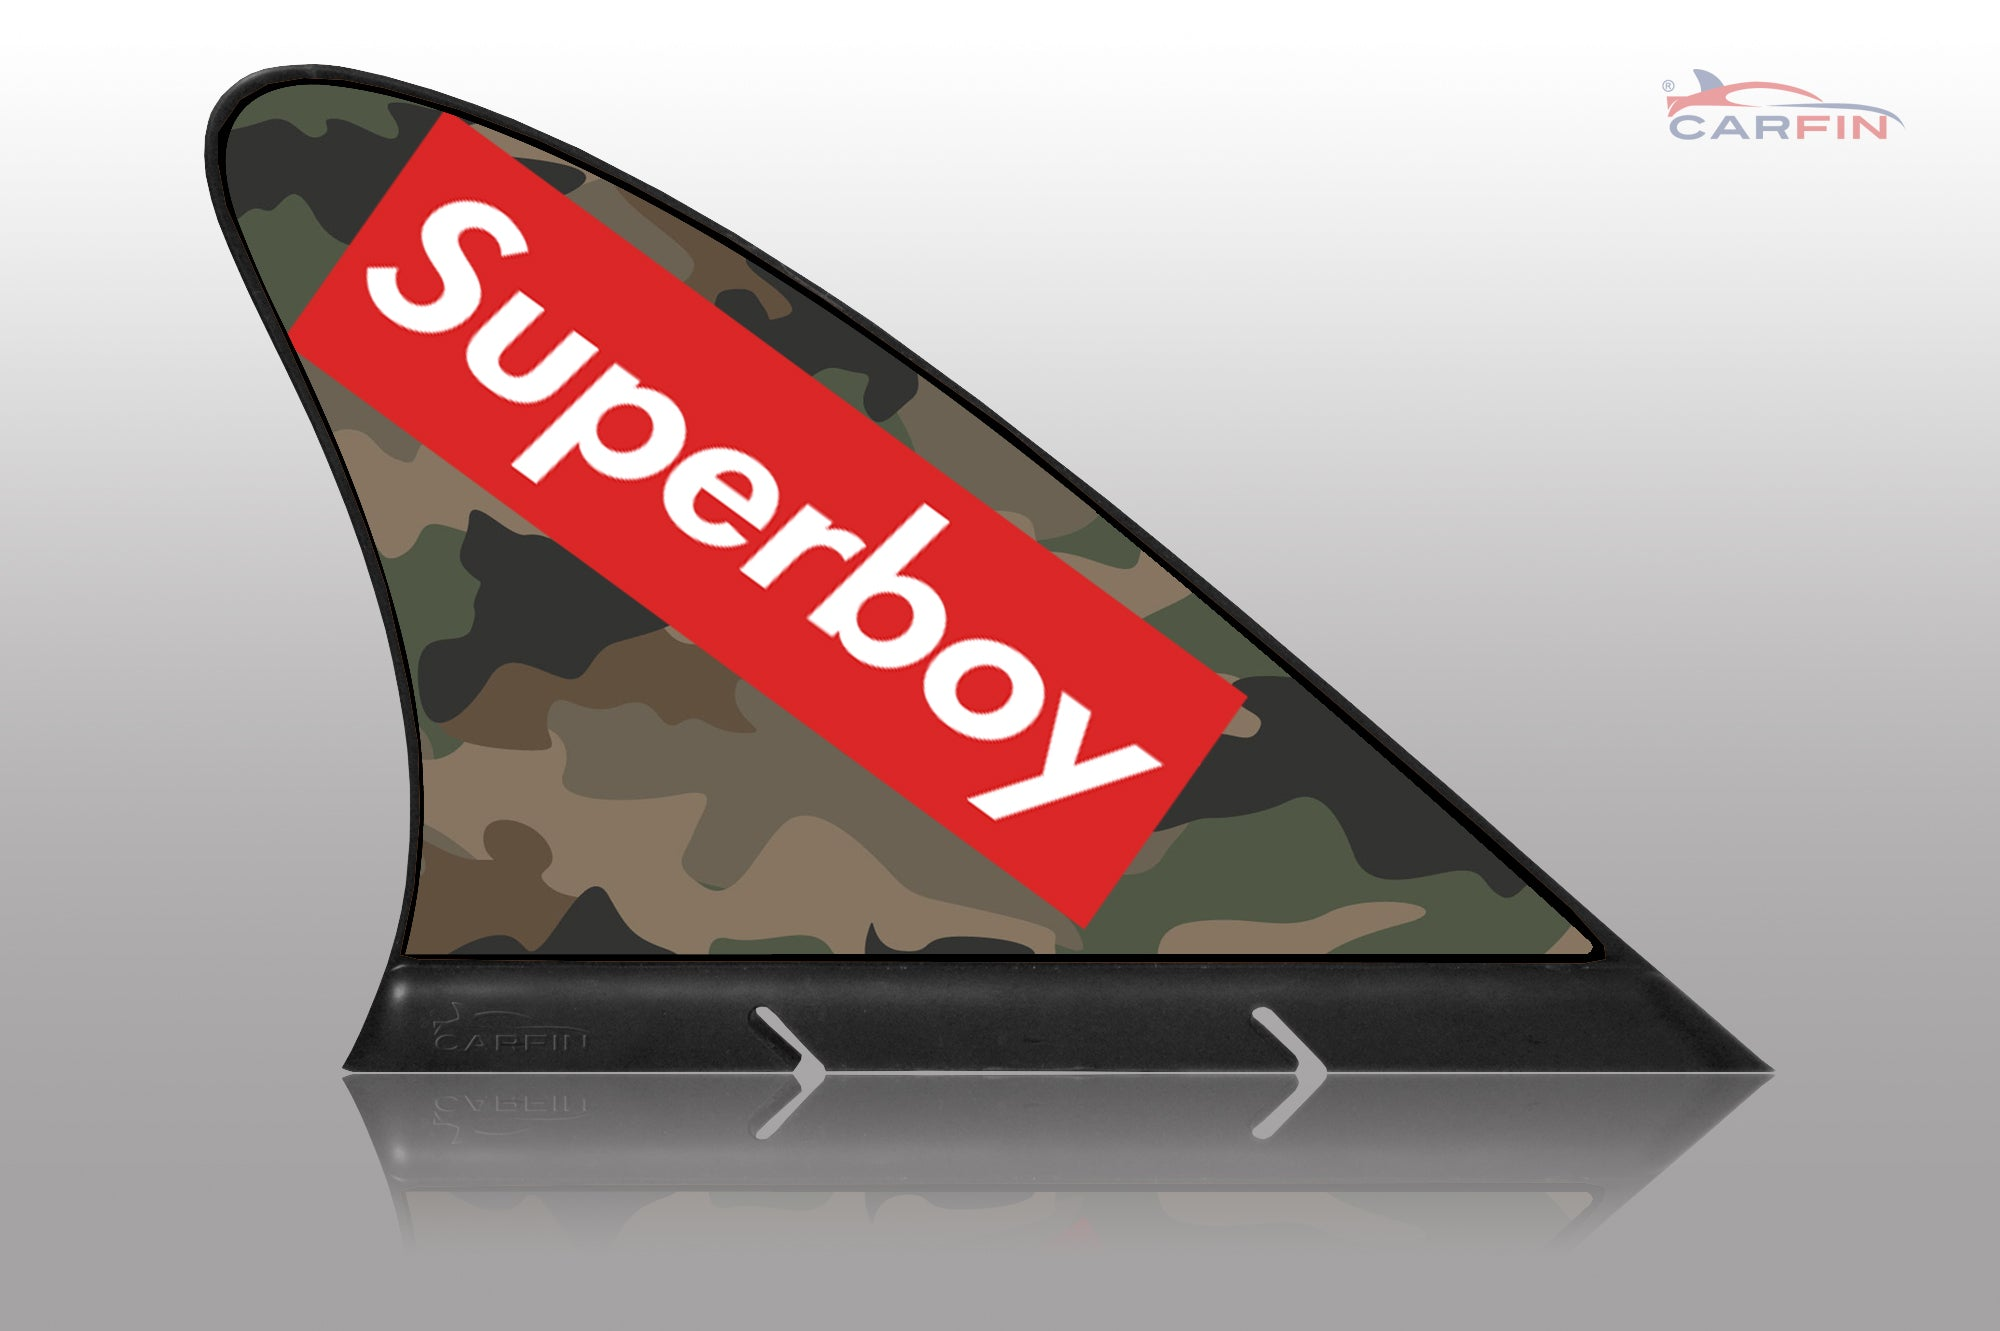 Super Boy Car Flag CARFIN , Magnetic Car signs. - Carfin